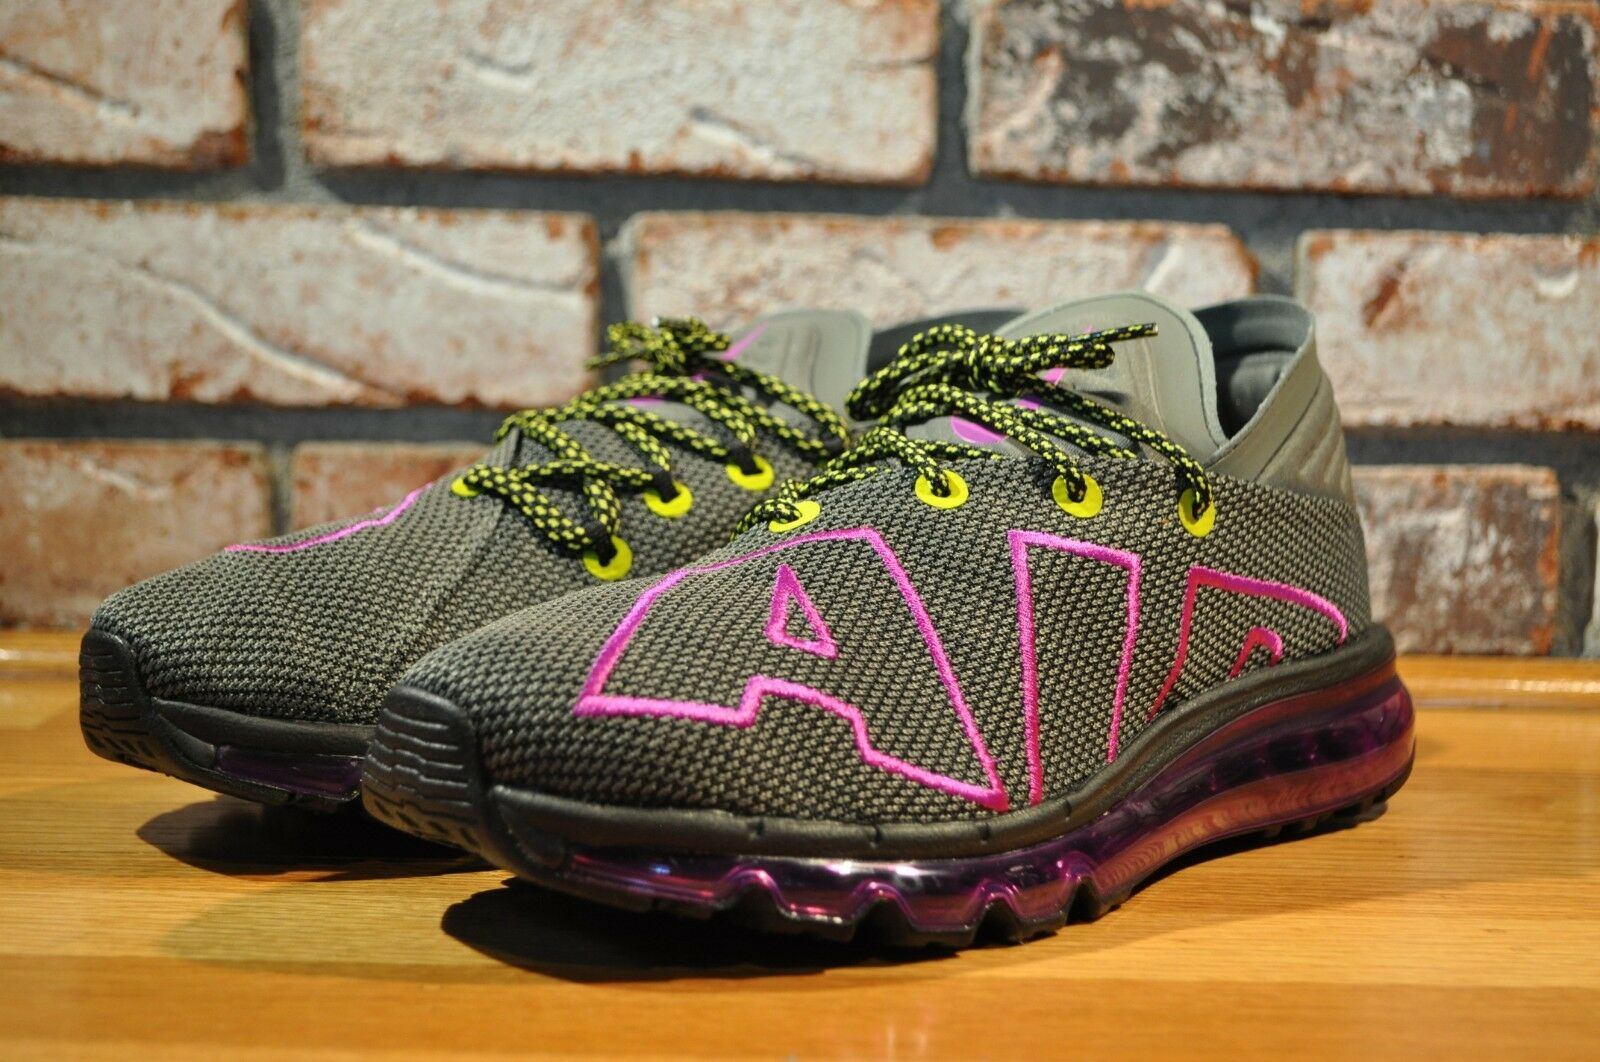 Nike Air Max Flair Up Tempo Running Shoes Shoes Running Gray/Purp/Volt AH9711-001 Size 10 d9eb74